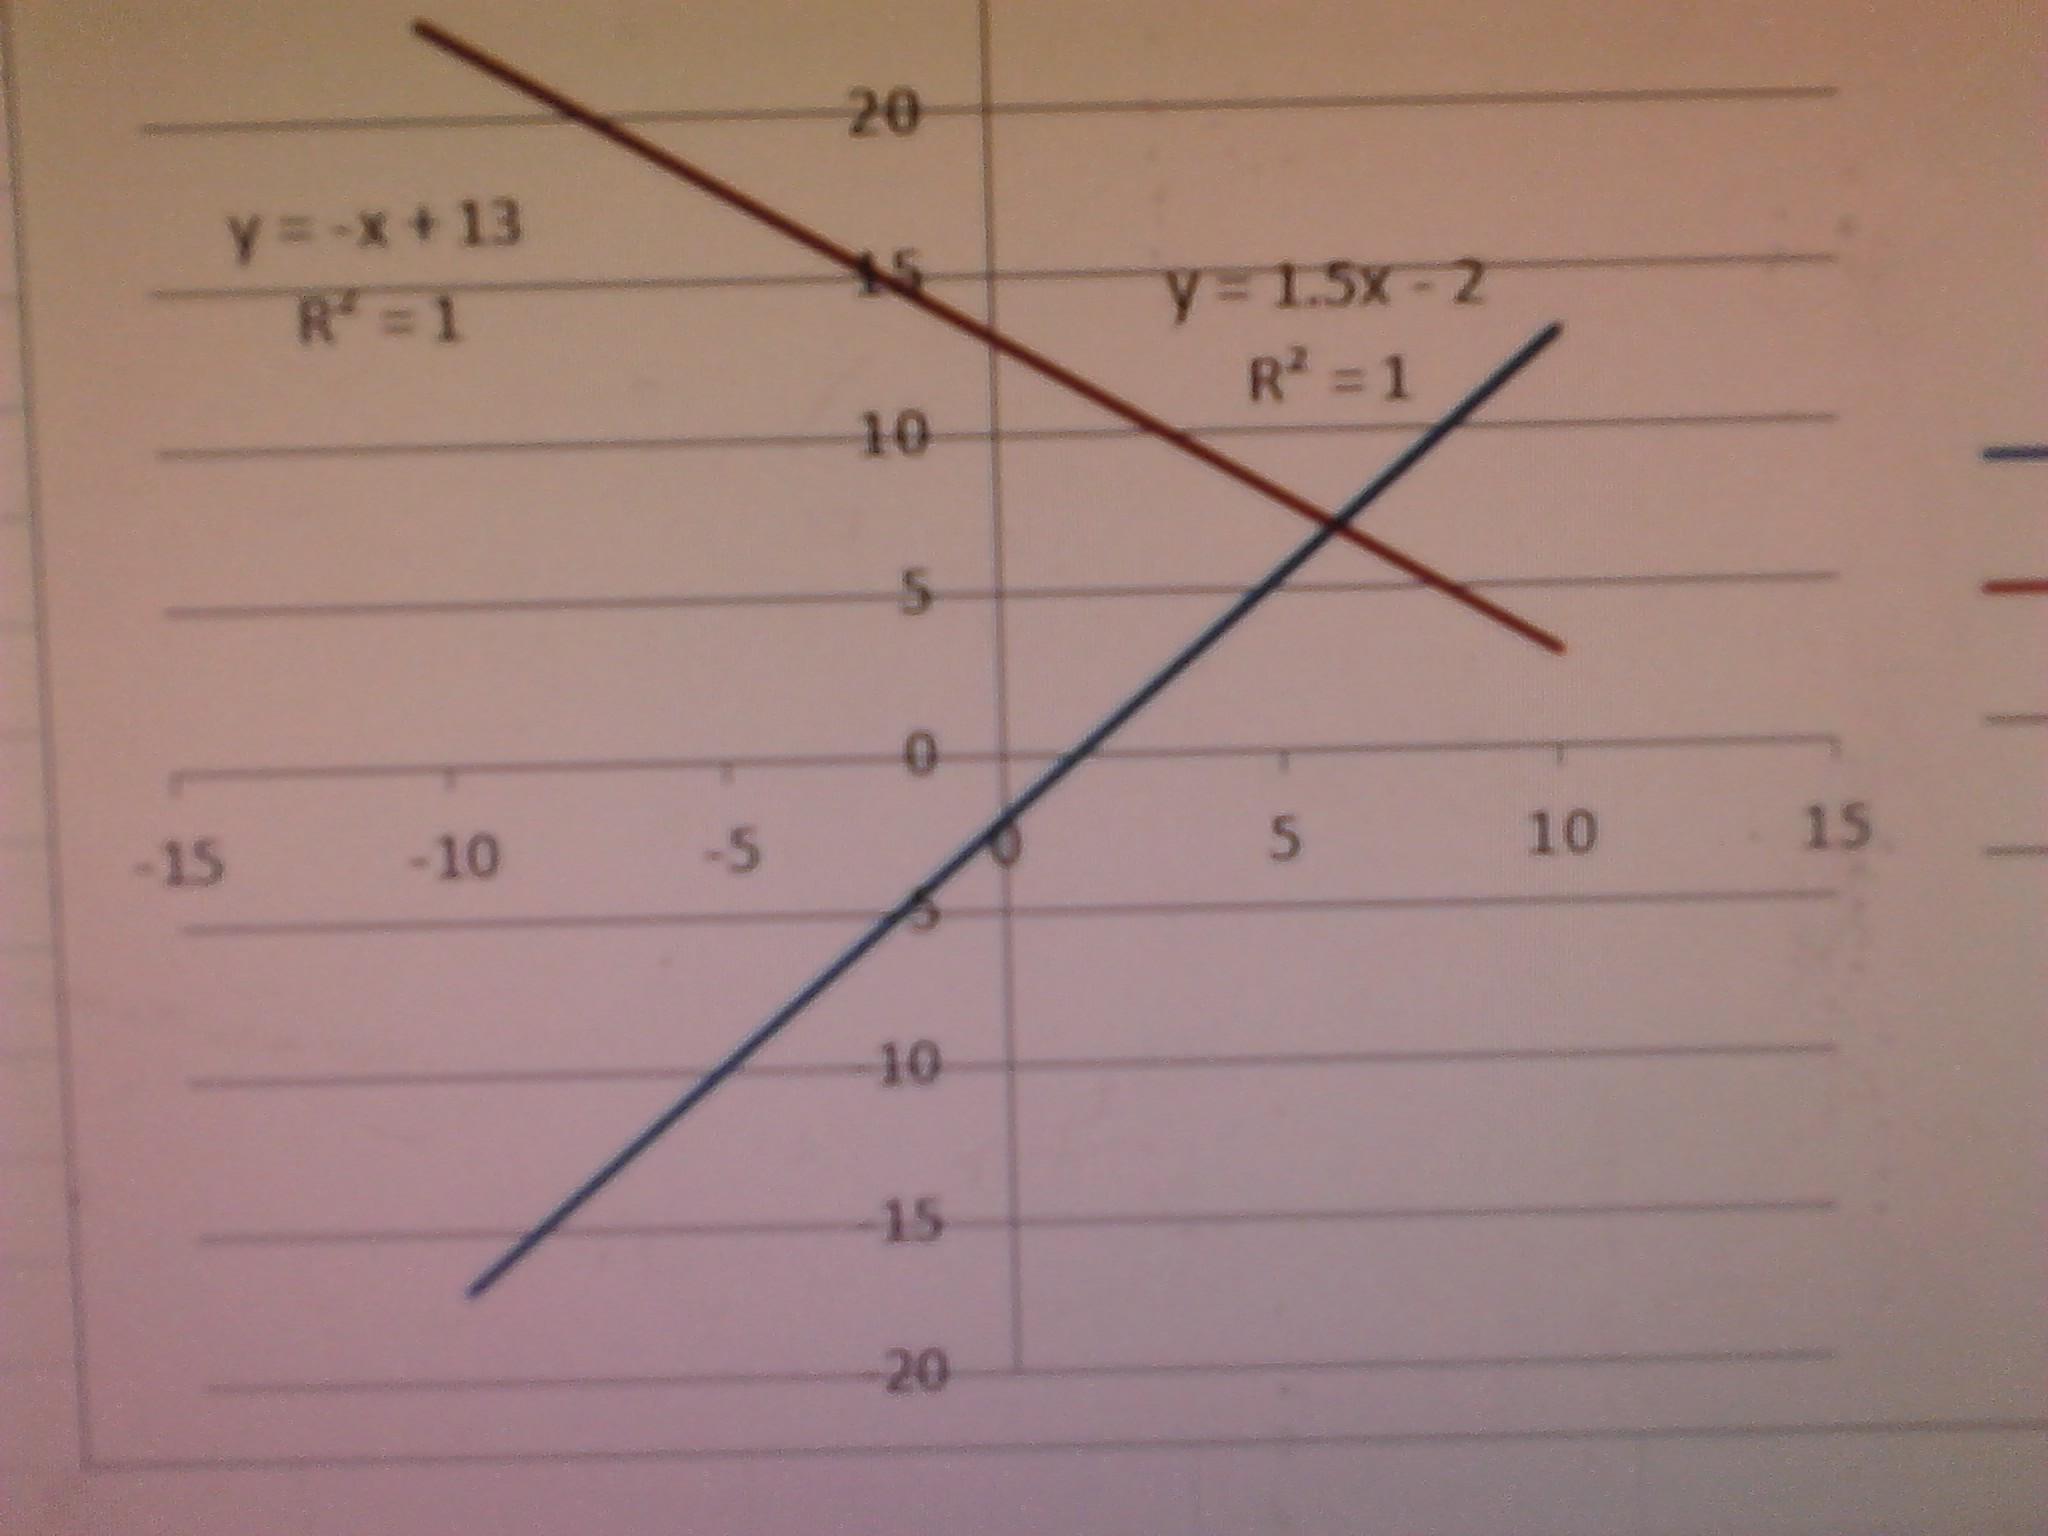 Match The System Of Linear Equations With The